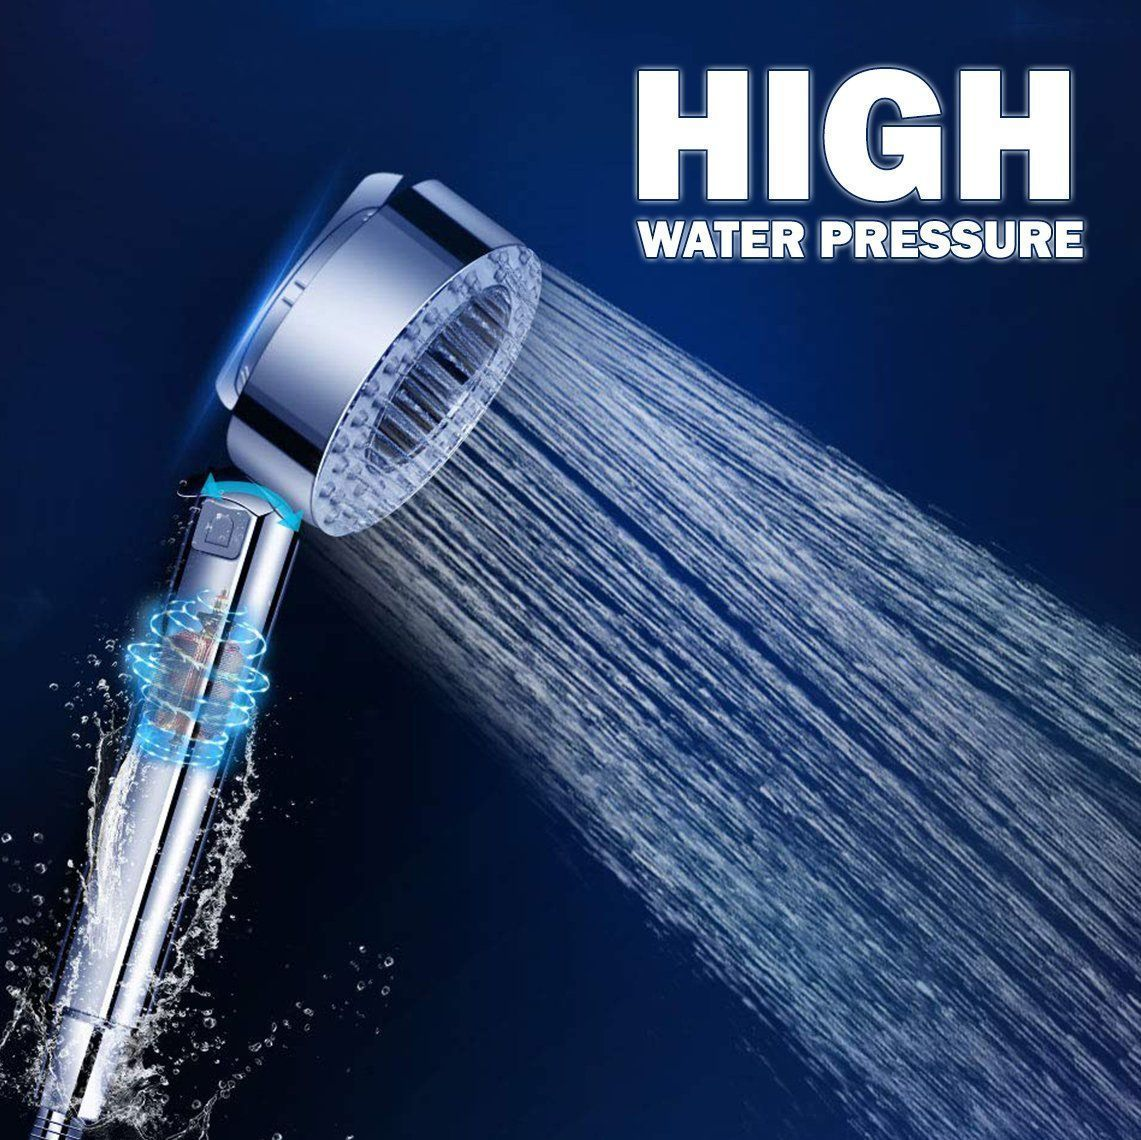 2020 Double Sided Pressurized Shower Head